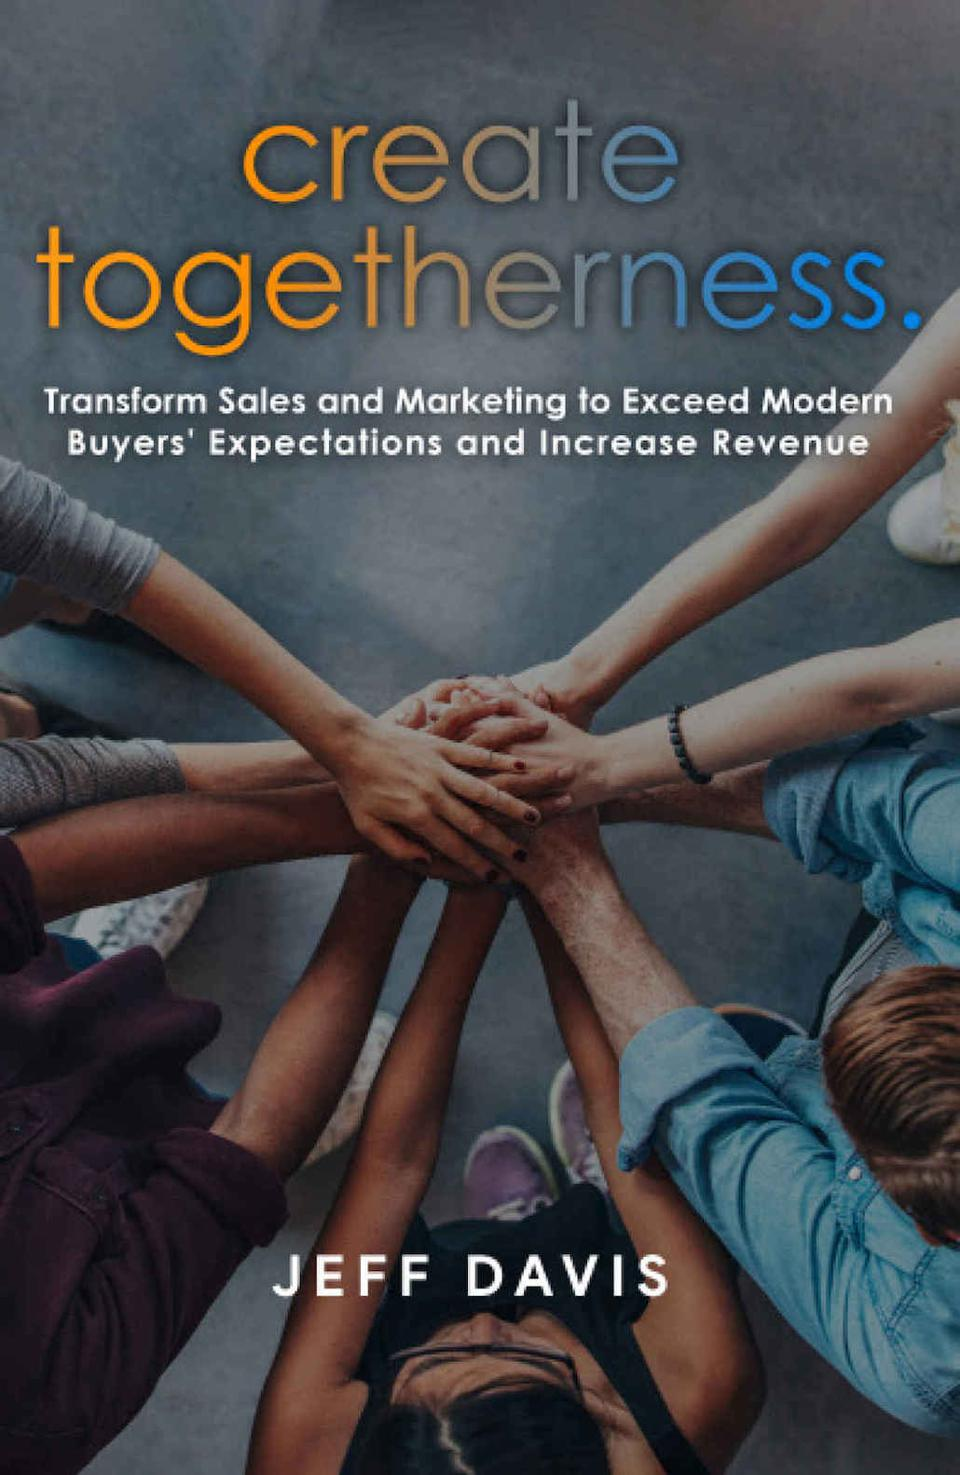 Create Togetherness: Transform Sales and Marketing to Exceed Modern Buyers' Expectations and Increase Revenue by Jeff Davis